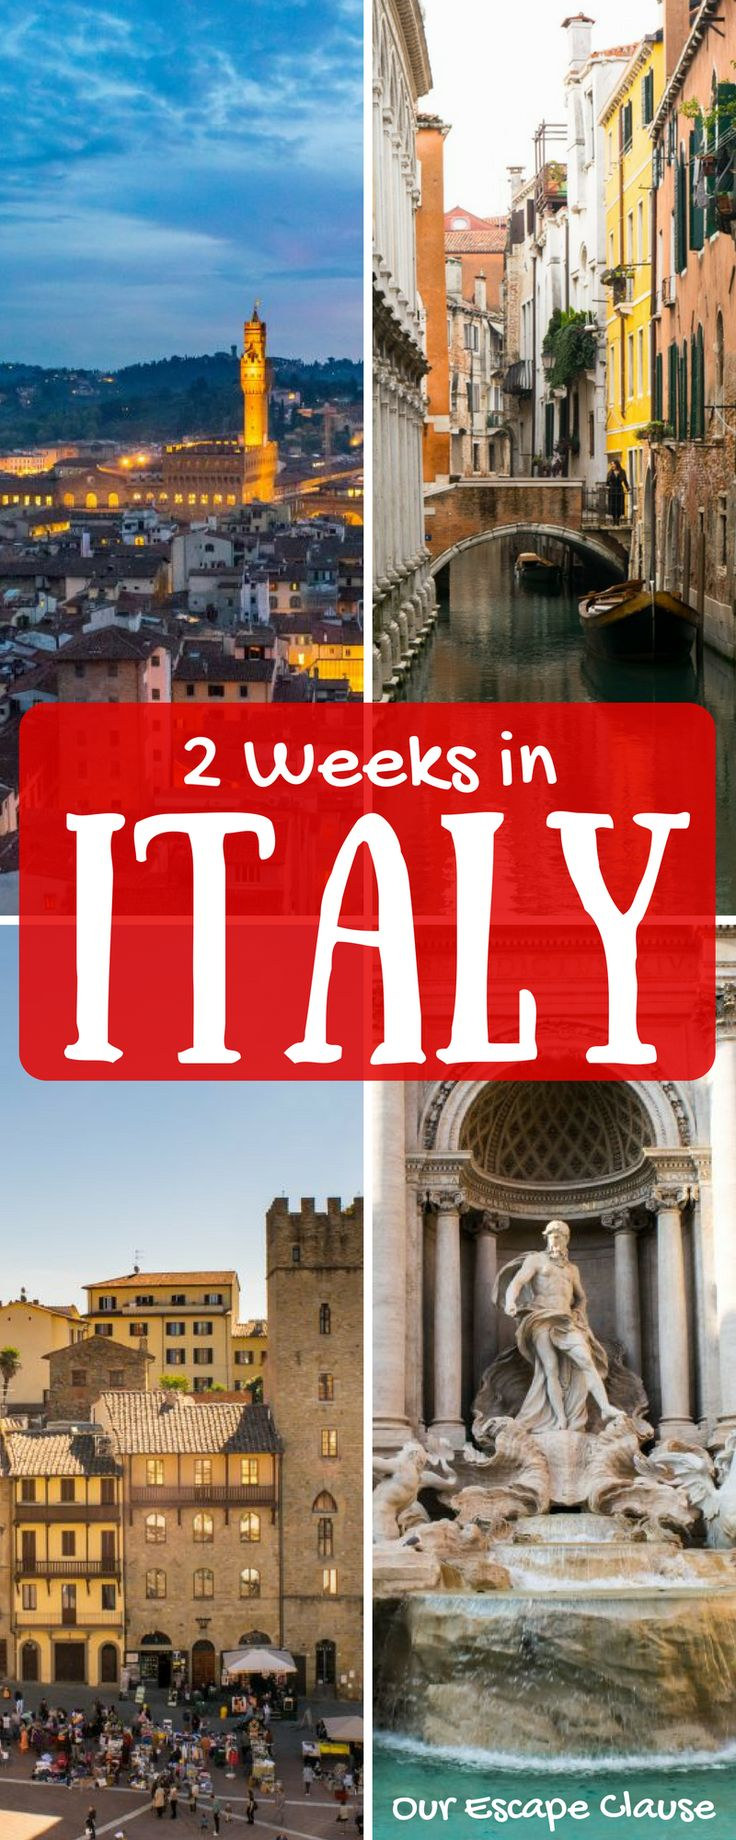 The ultimate 2 weeks in Italy itinerary for first time visitors to the country! Explore Rome, Florence, Tuscany, Venice, and Cinque Terre over 14 days and discover the magic of Italy. #italy #itinerary #italia #tuscany #rome #florence #venice #travel